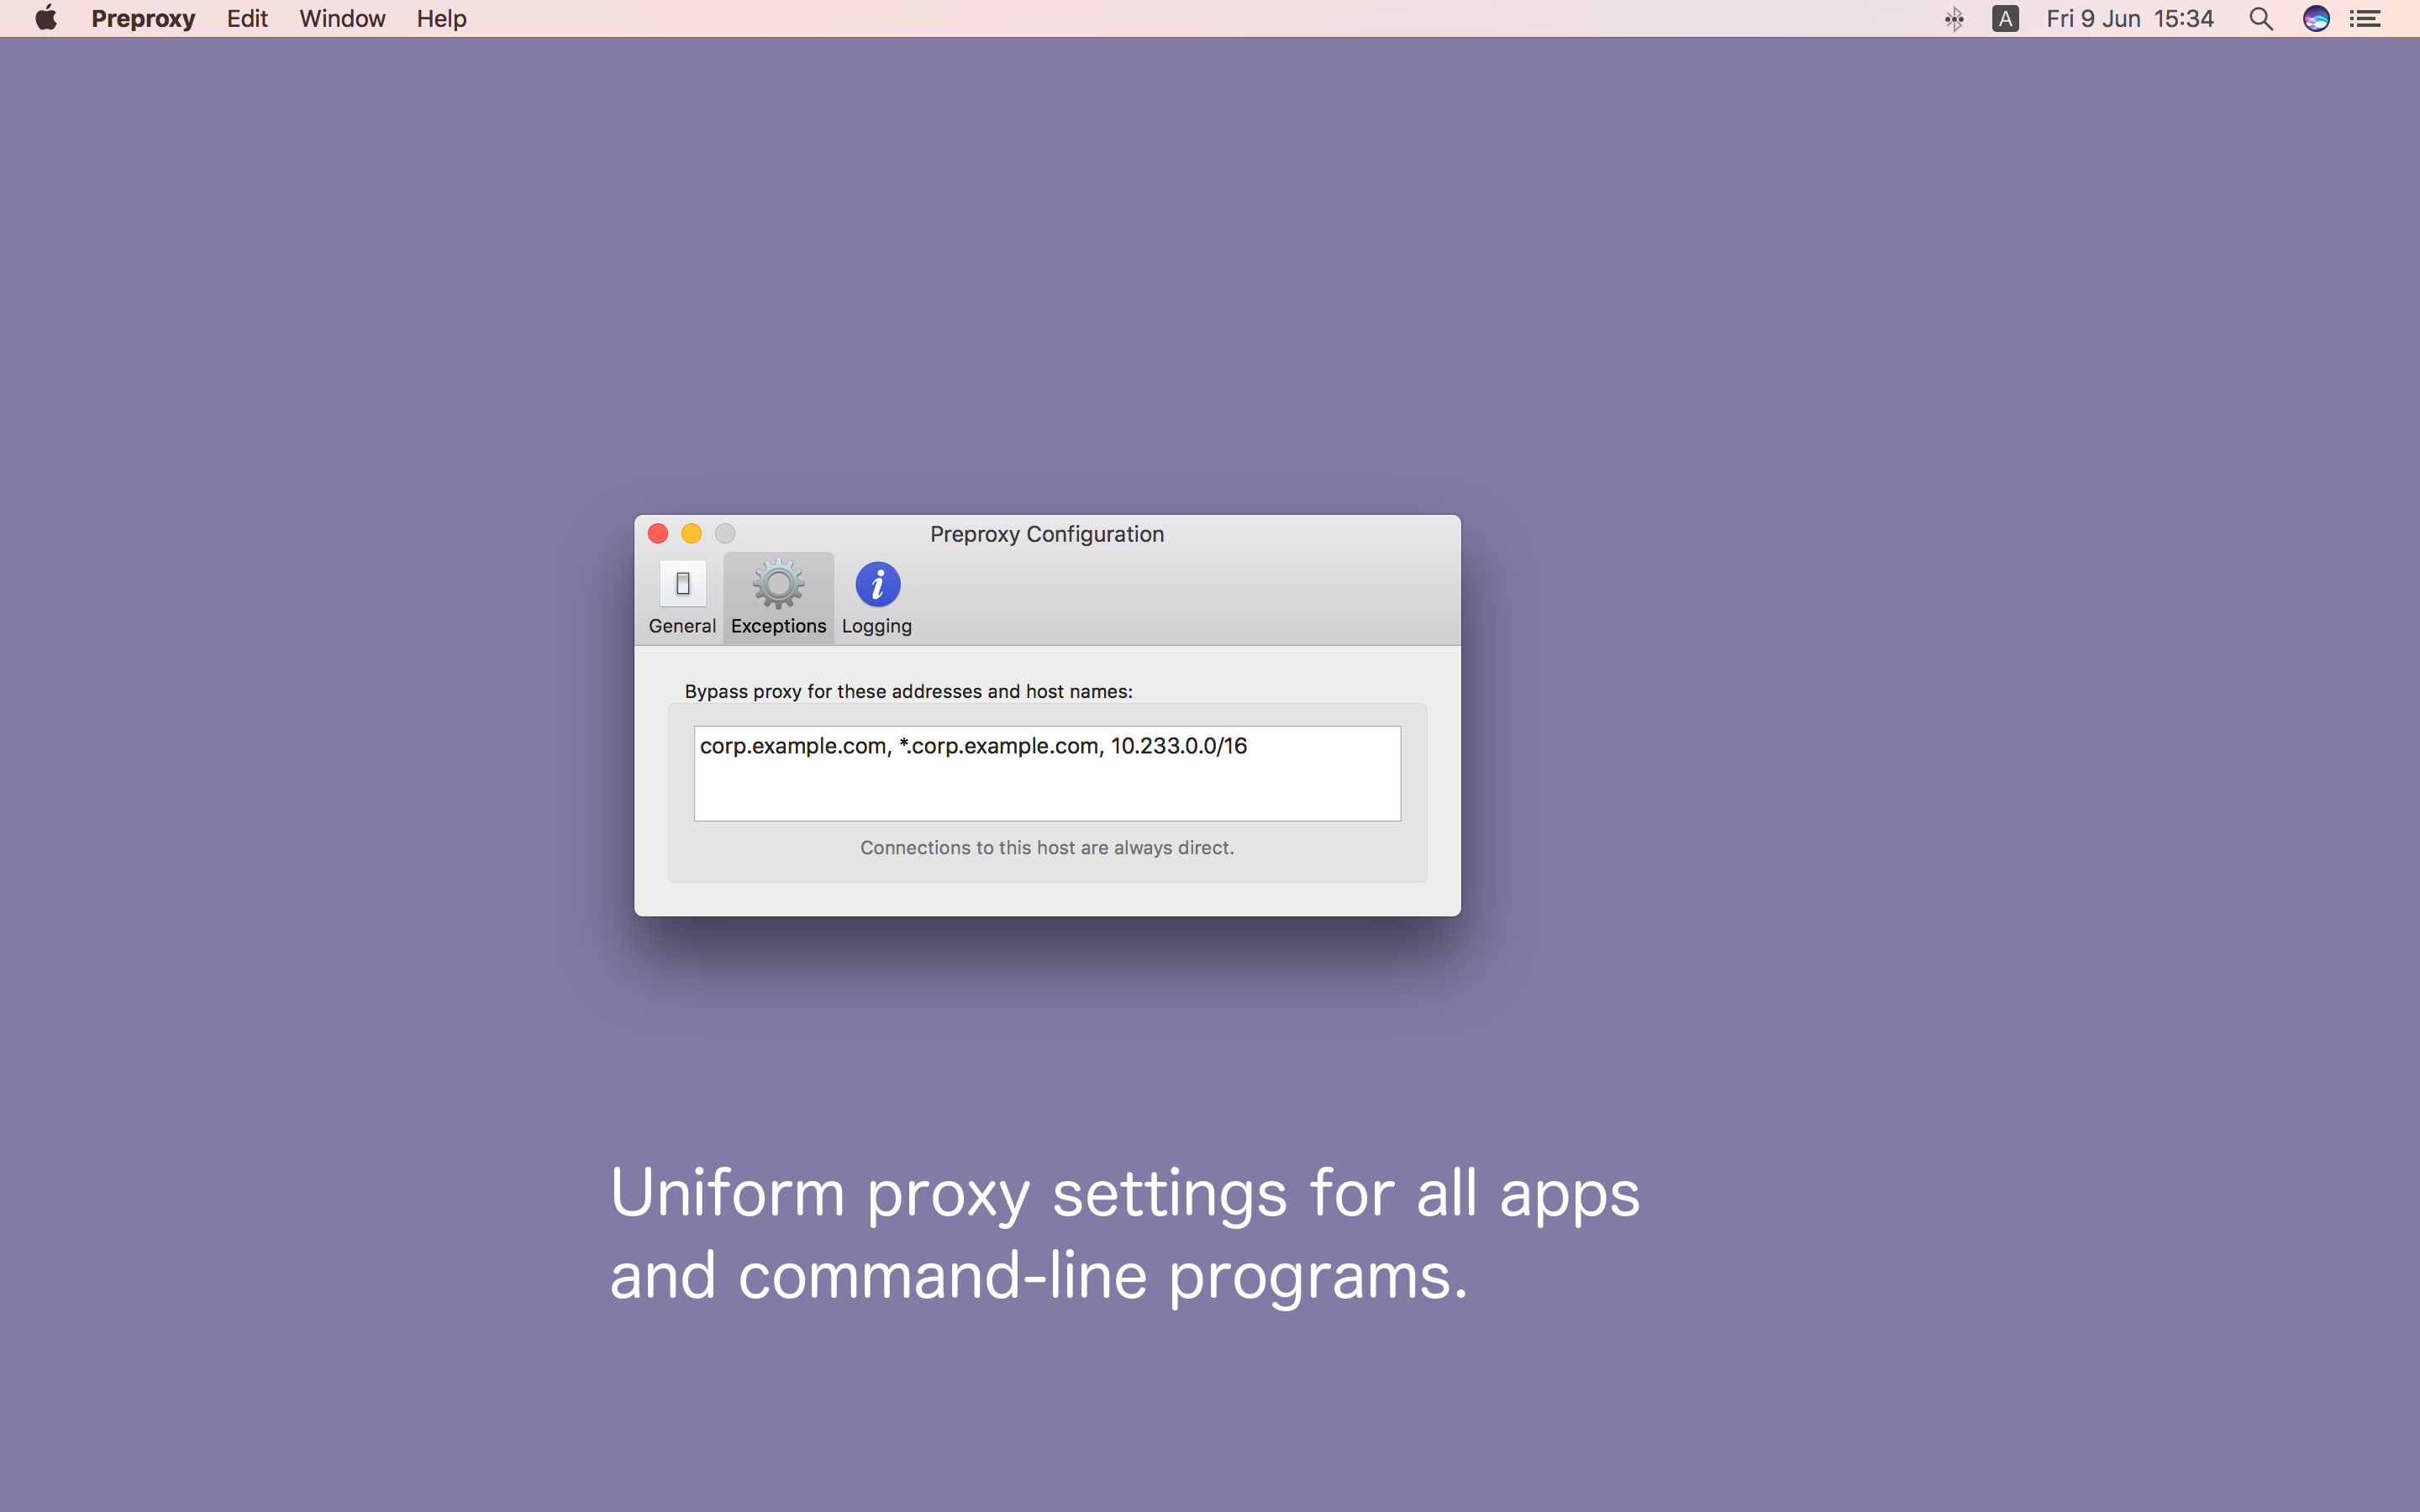 Preproxy 1.5 Exceptions Screenshot